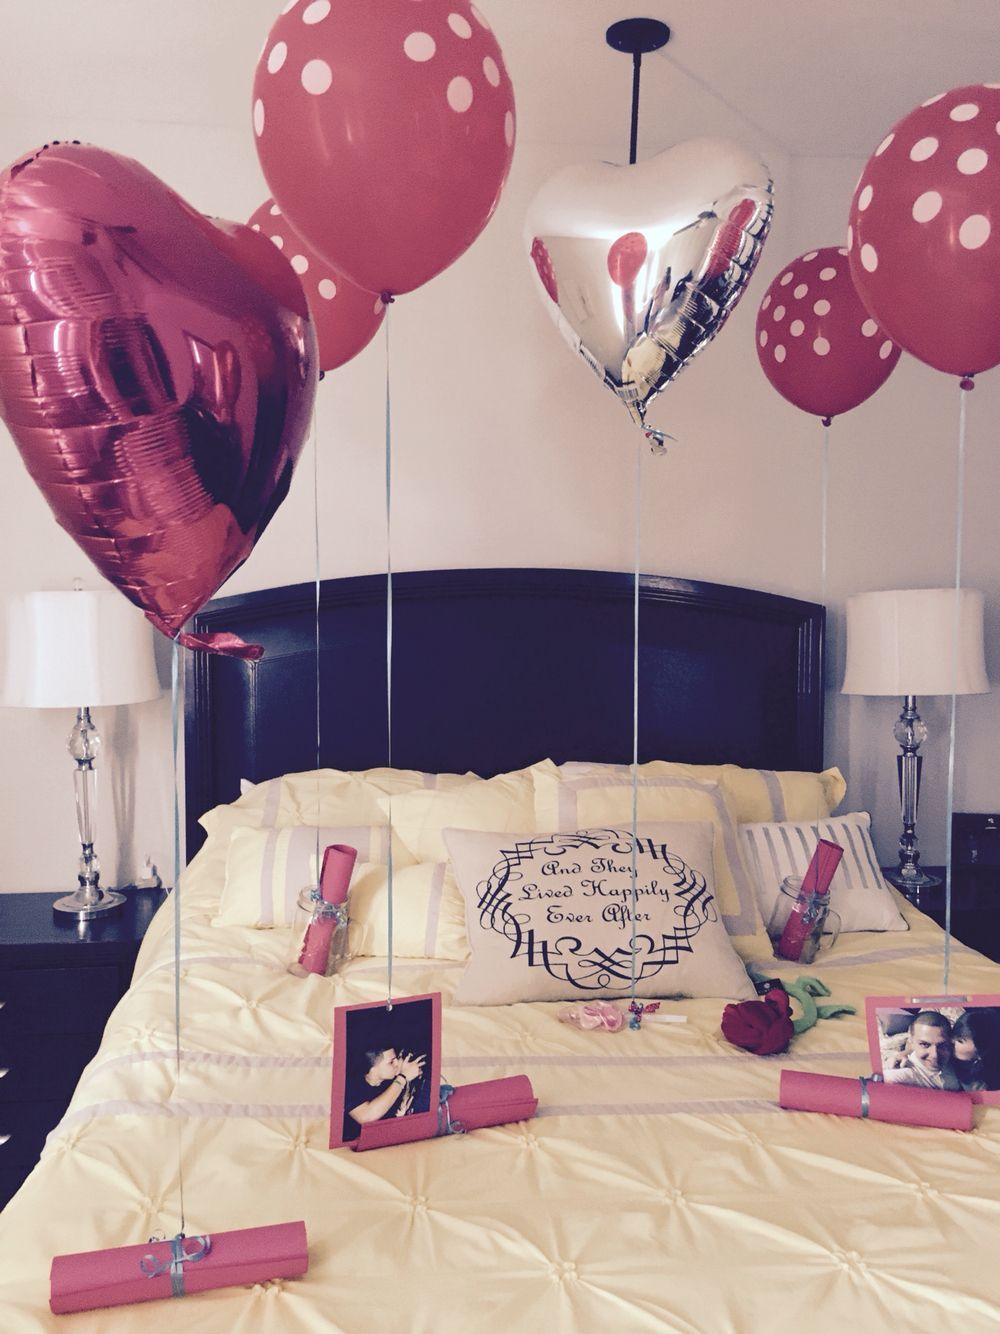 Valentine S Day Ideas For Husband: 25 Valentine's Day Gifts For Your Boyfriend Or Husband